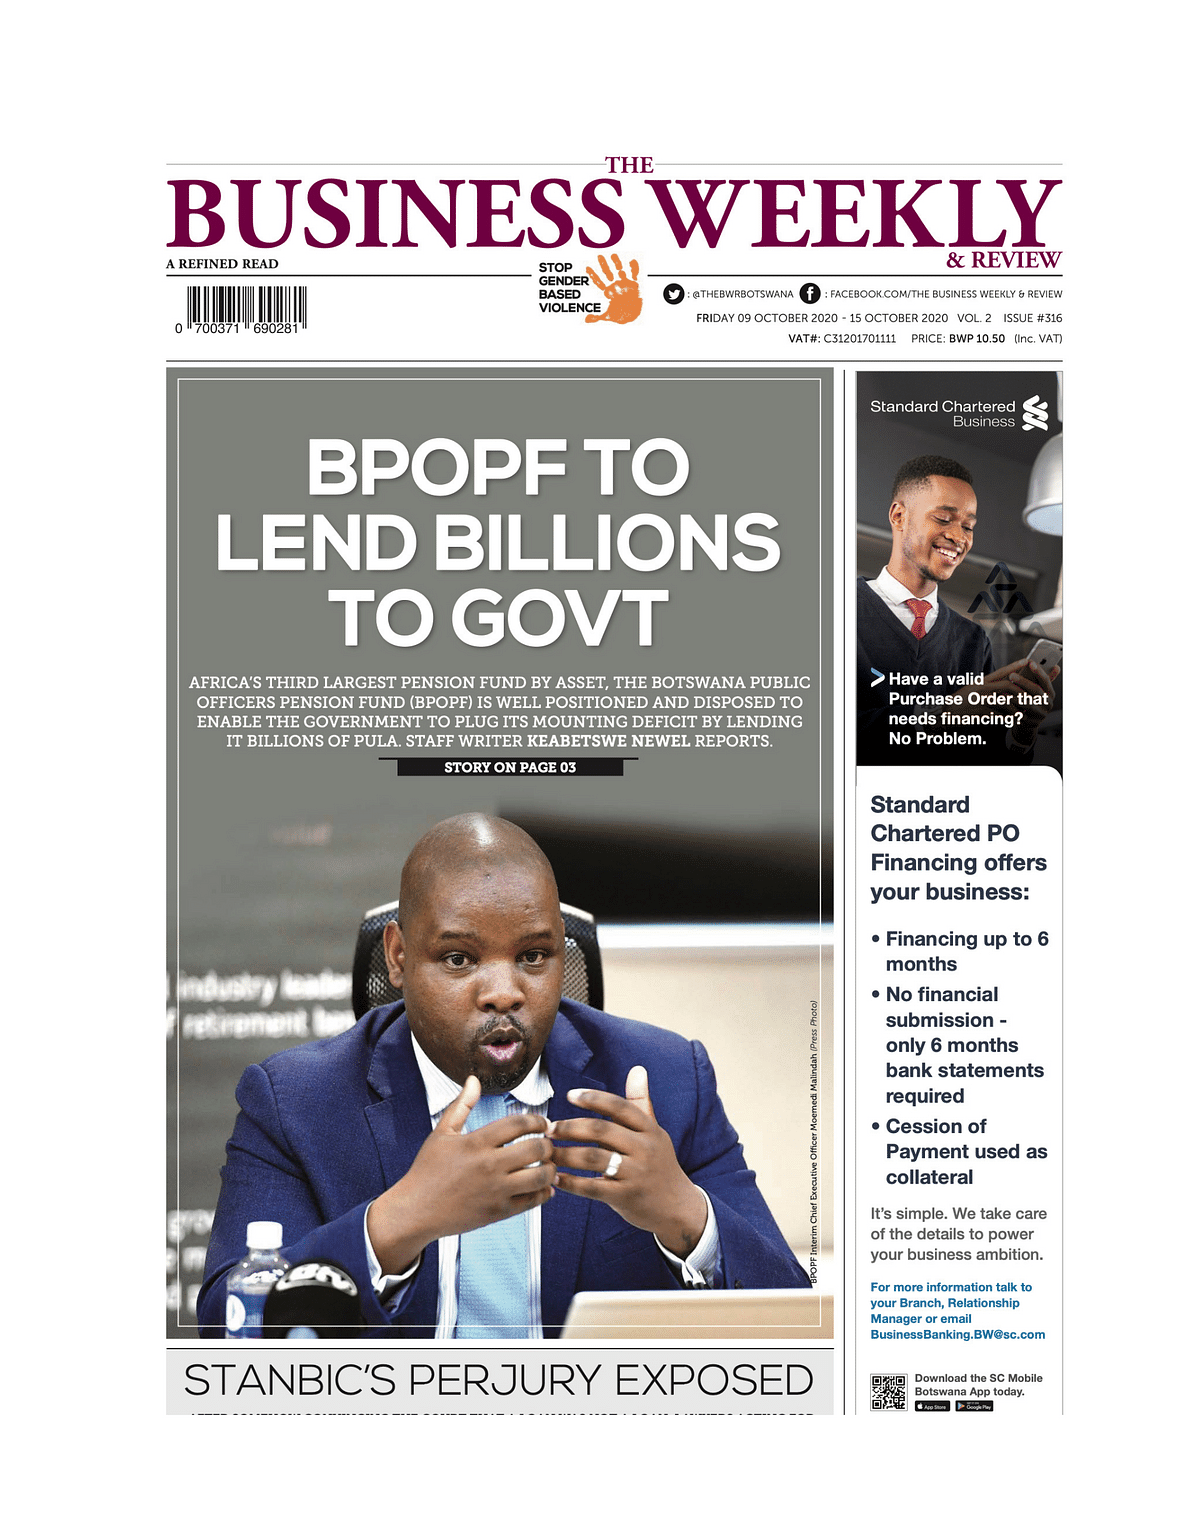 The Business Weekly & Review 09 October 2020